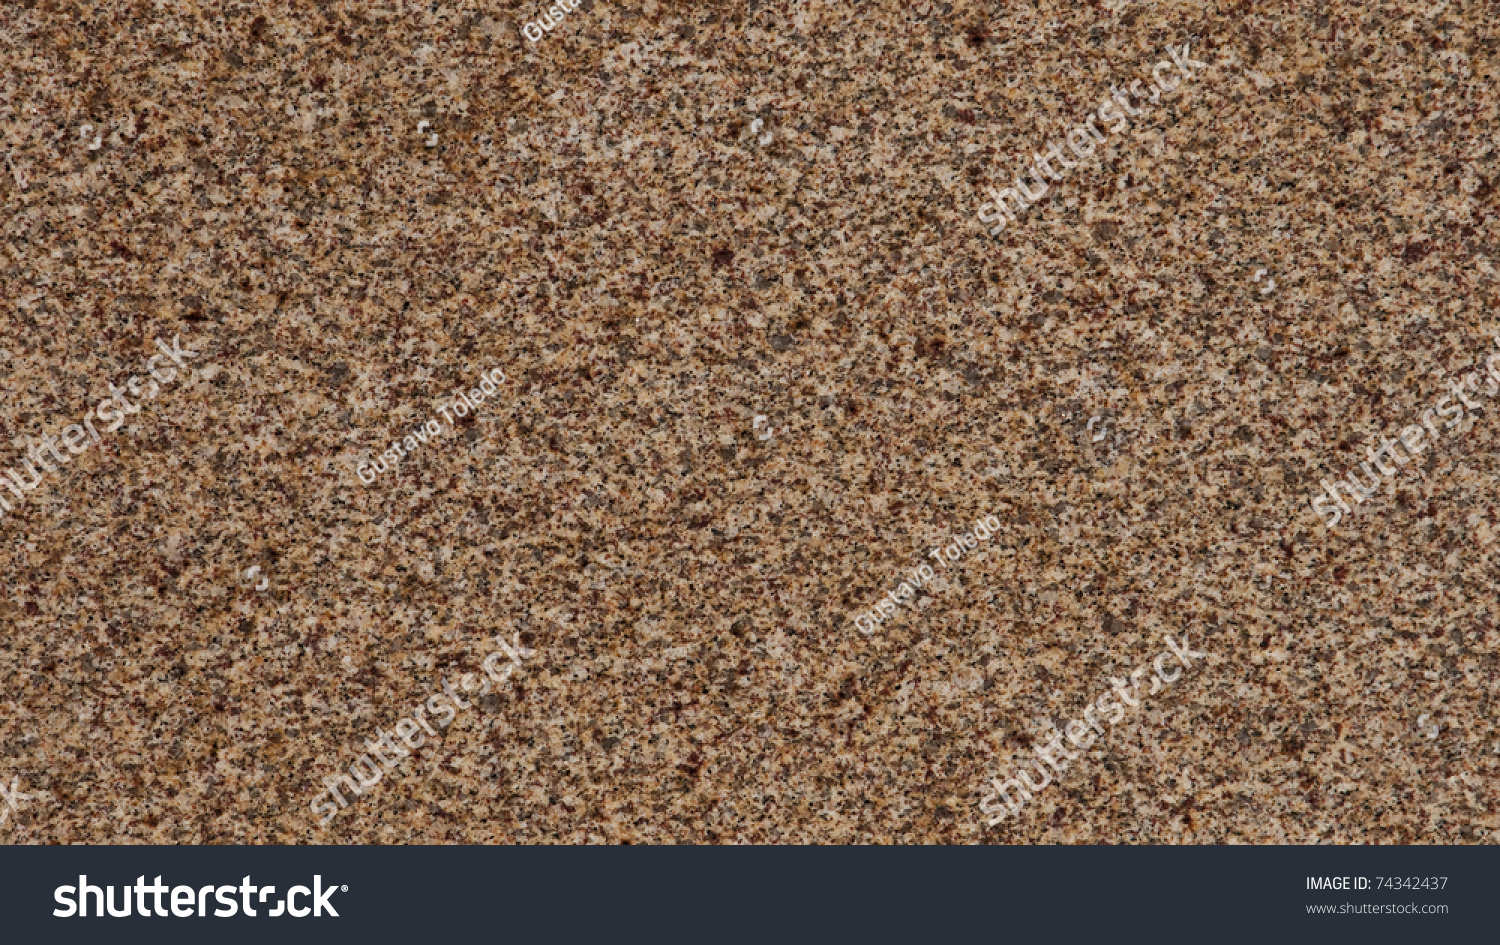 Brazilian Natural Stone : Ft sample of passion fruit yellow gneiss from brazil